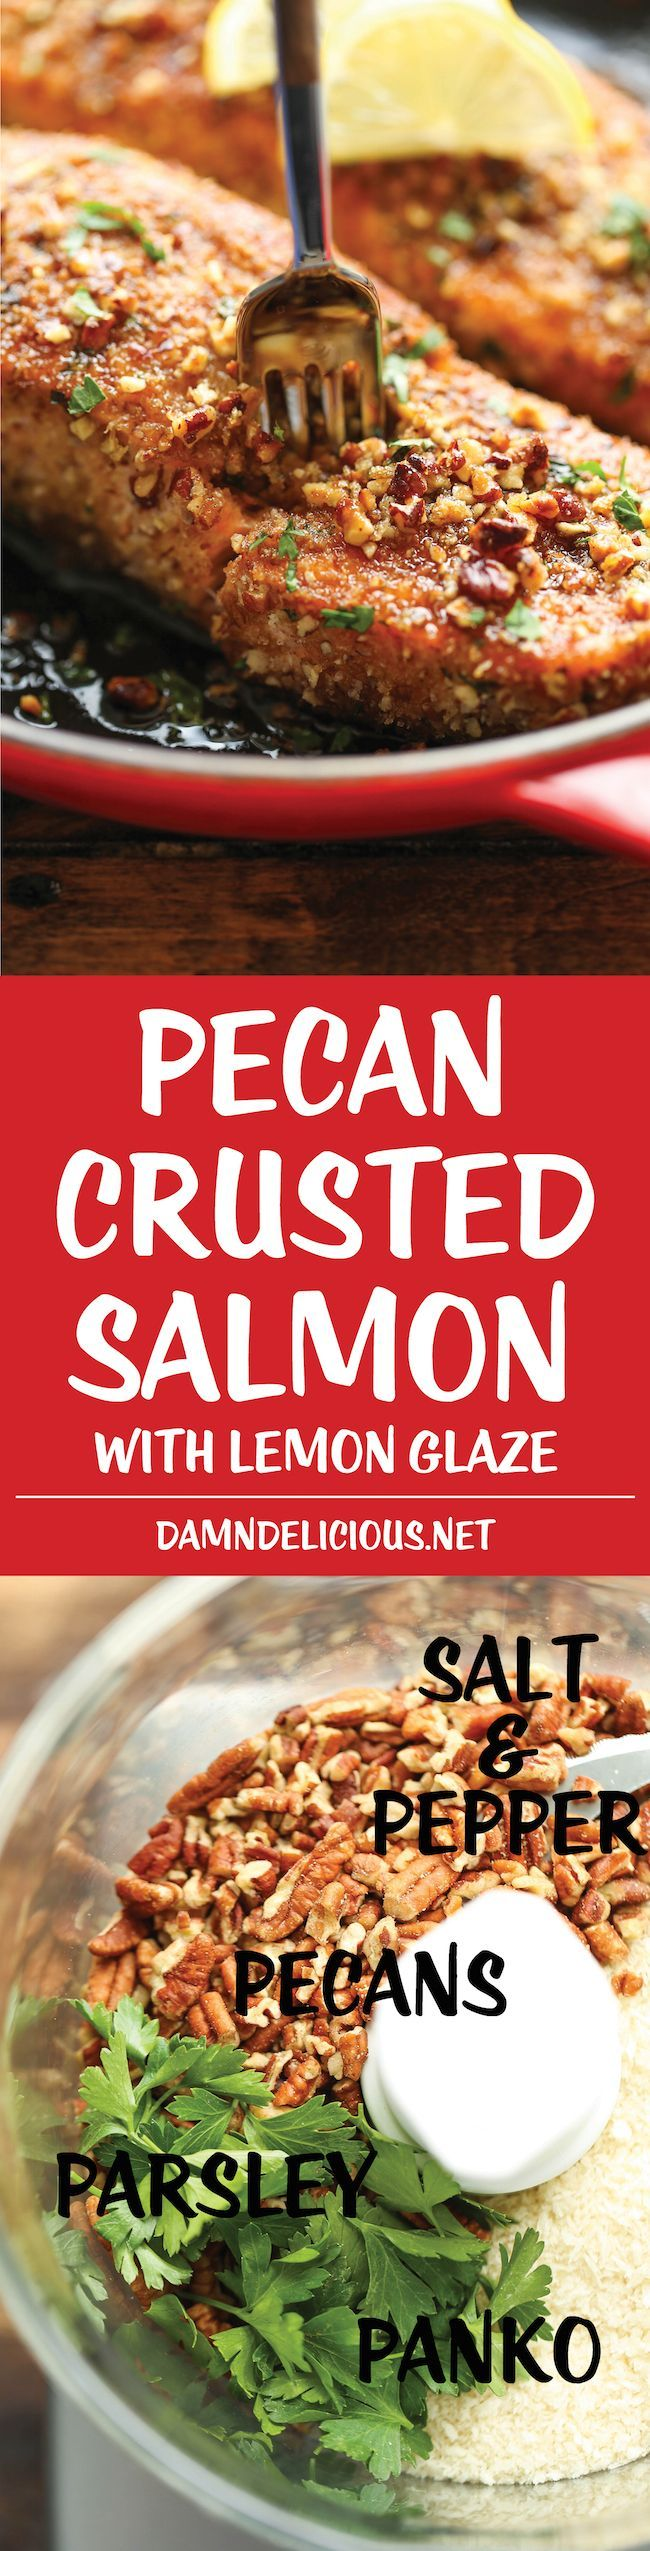 Pecan Crusted Salmon with Lemon Glaze - An epic crunchy pecan crust that comes together in just 5 min - easy peasy. And the lemon glaze is to die for!